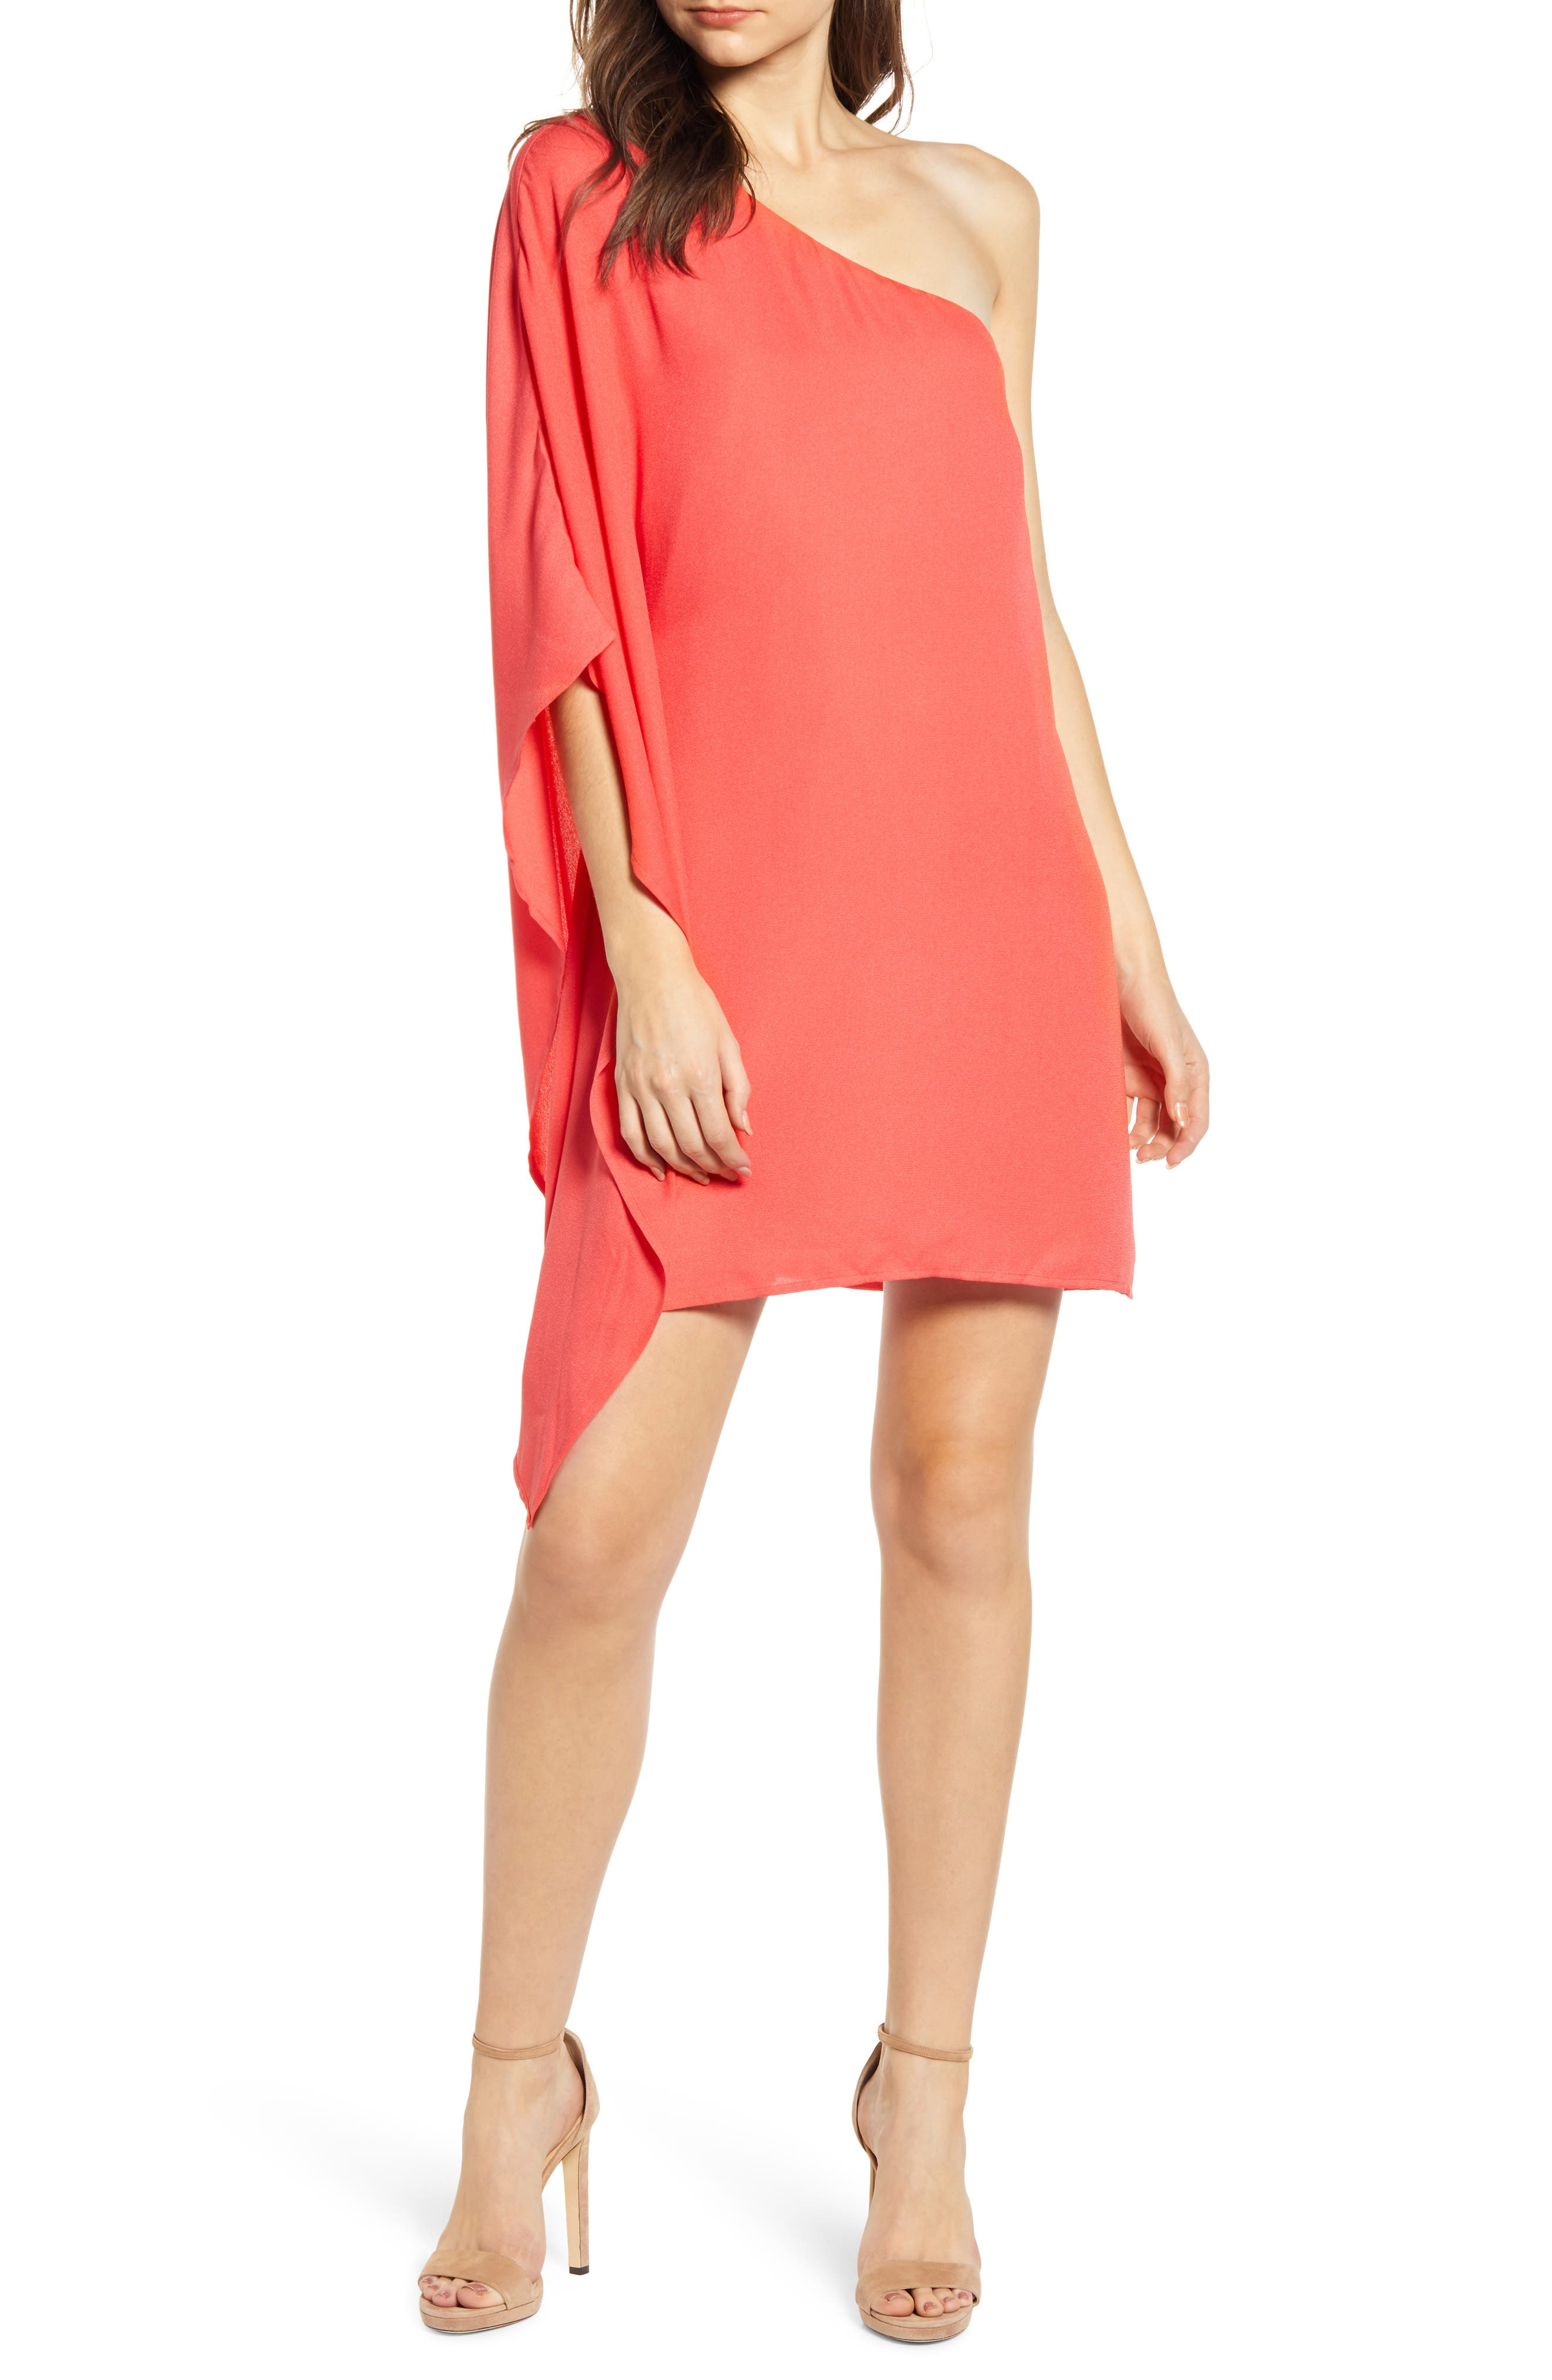 Cupcakes And Cashmere One-Shoulder Crepe Dress, Coral